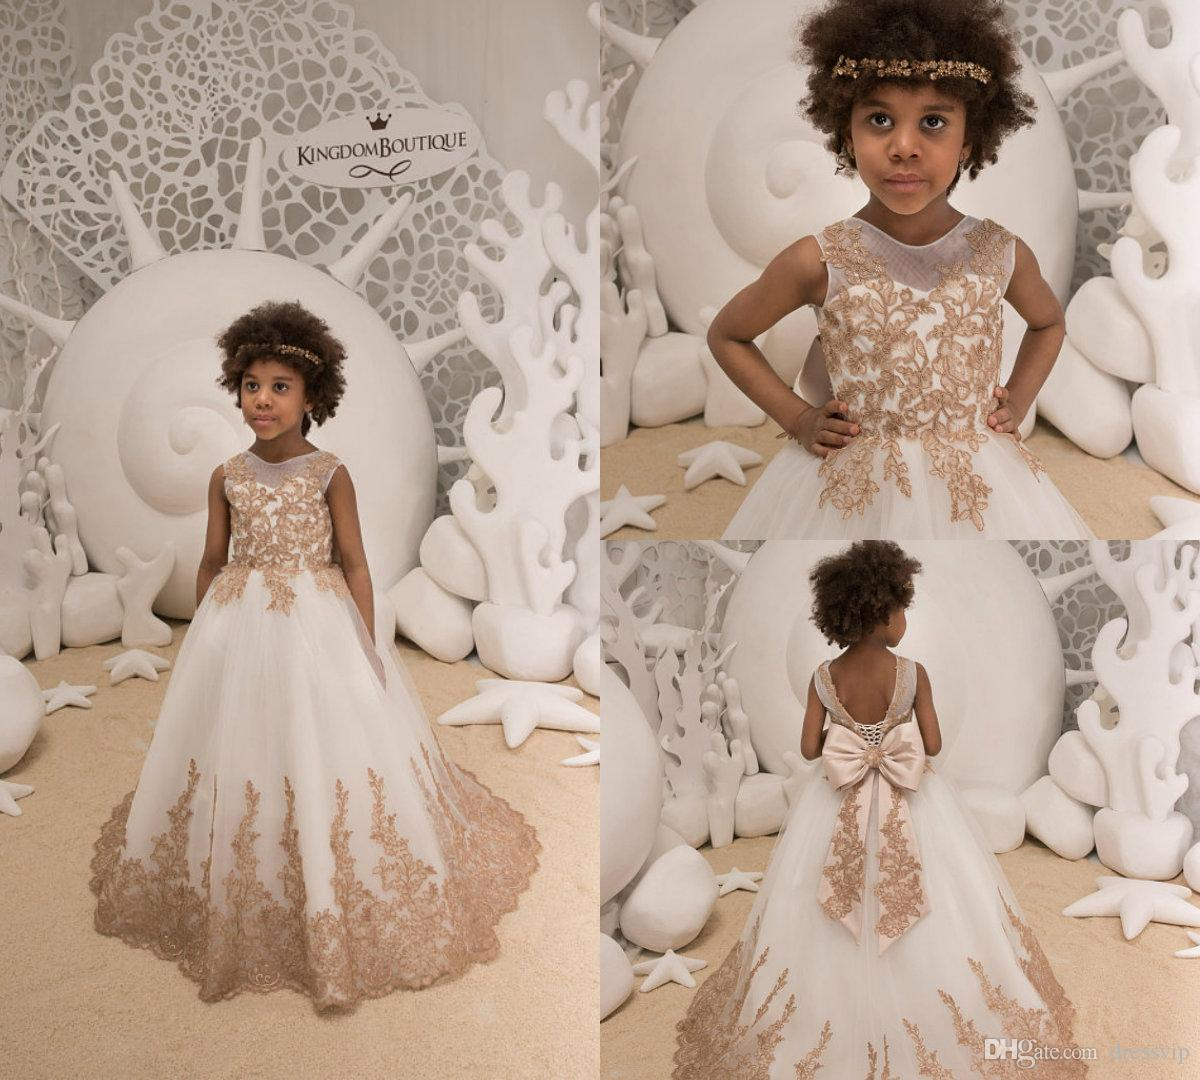 b177bb3f36d 2018 Ivory And Cappuccino Flower Girl Dresses For Wedding Birthday Wedding  Party Bridesmaid Holiday Lace Black Girls Pageant Dress Girl Flower Dress  High ...